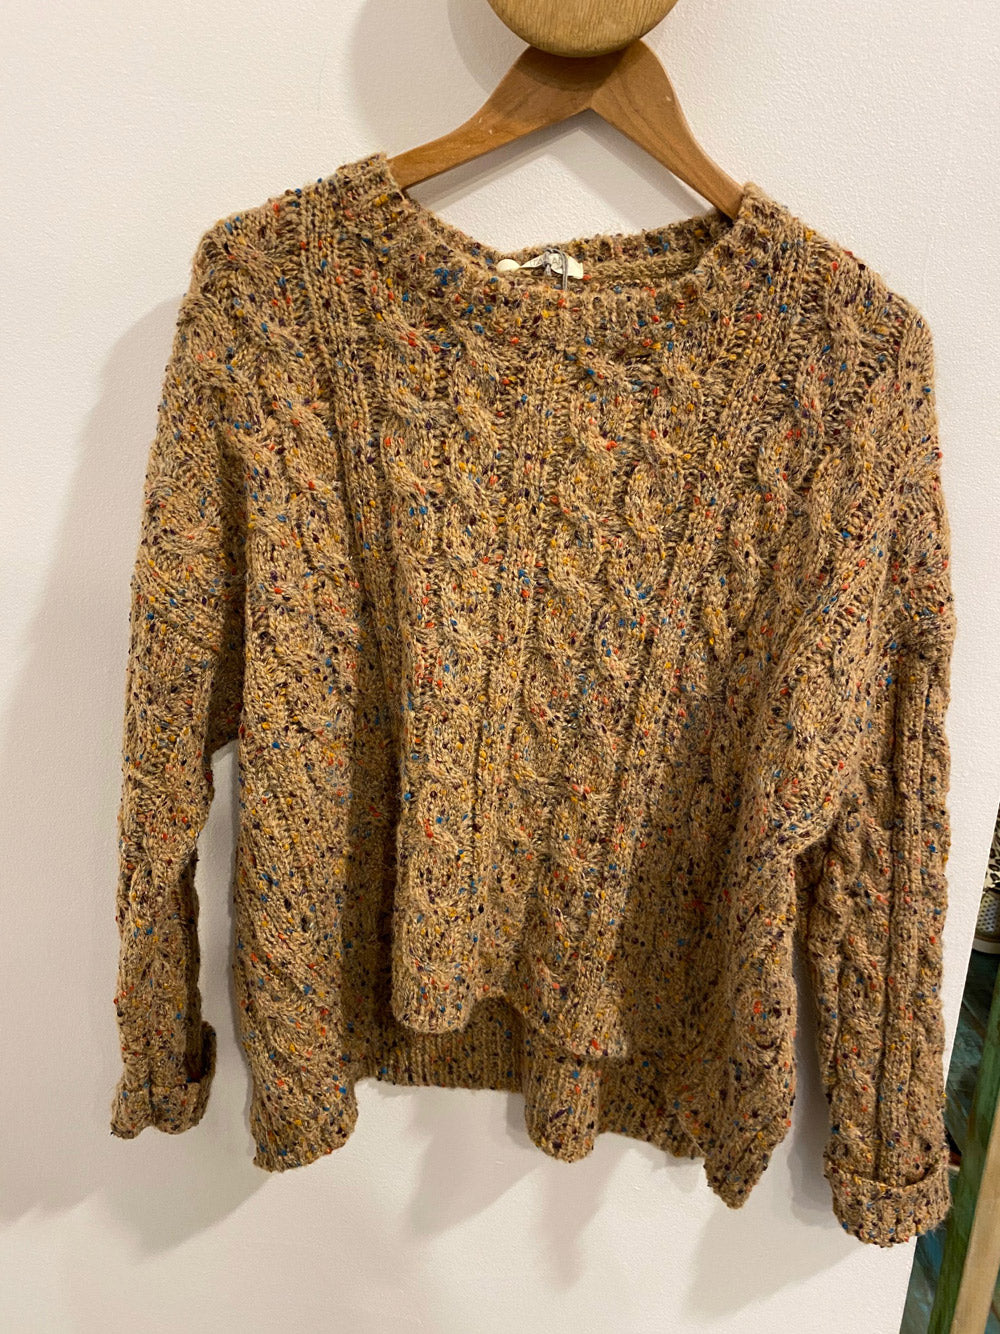 ITALIAN STAR Speckle Knit Camel